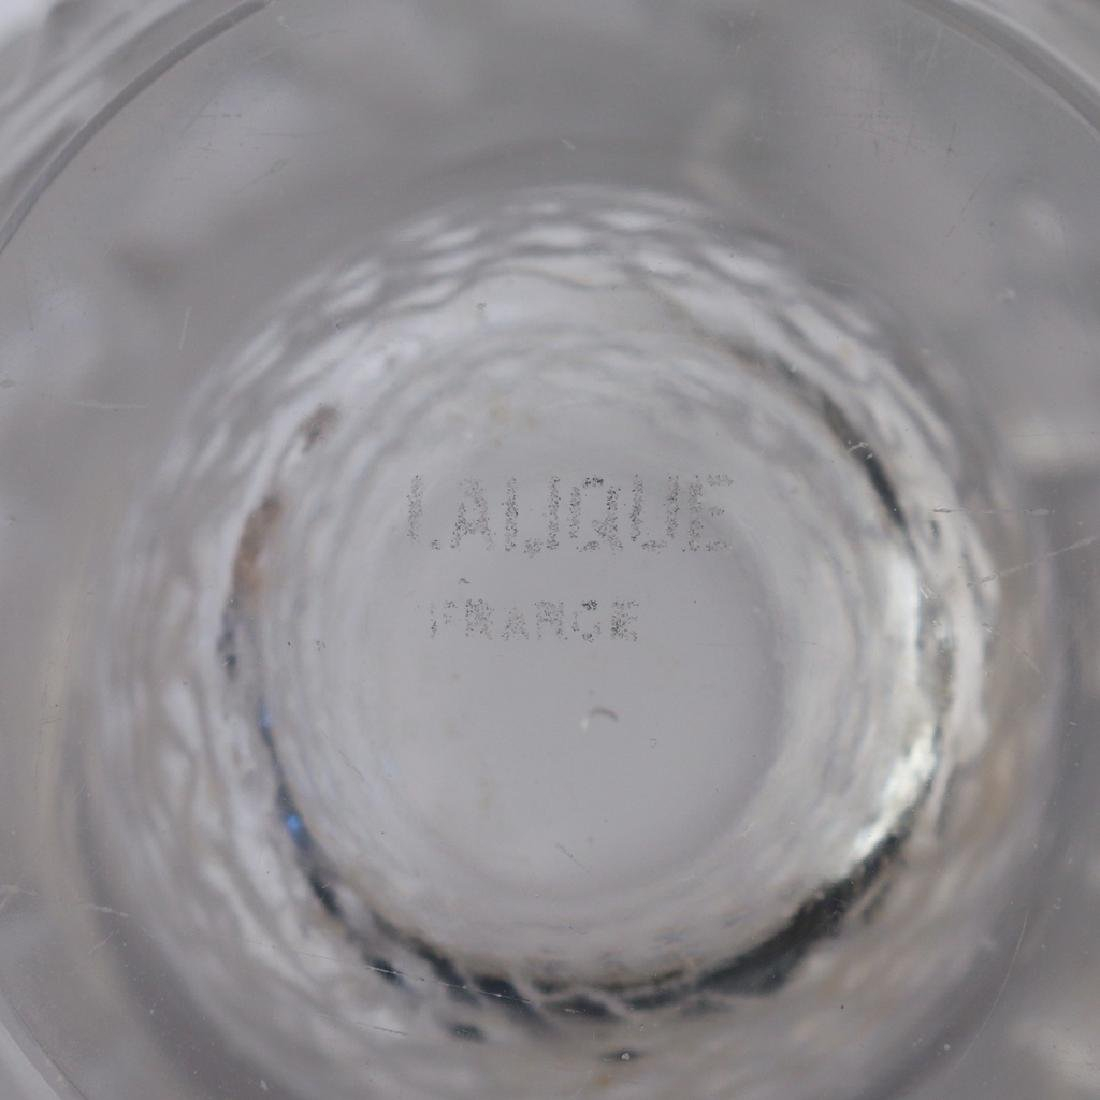 """RENE LALIQUE LES POISSONS"""" FROSTED CRYSTAL VASE"""" - 2"""